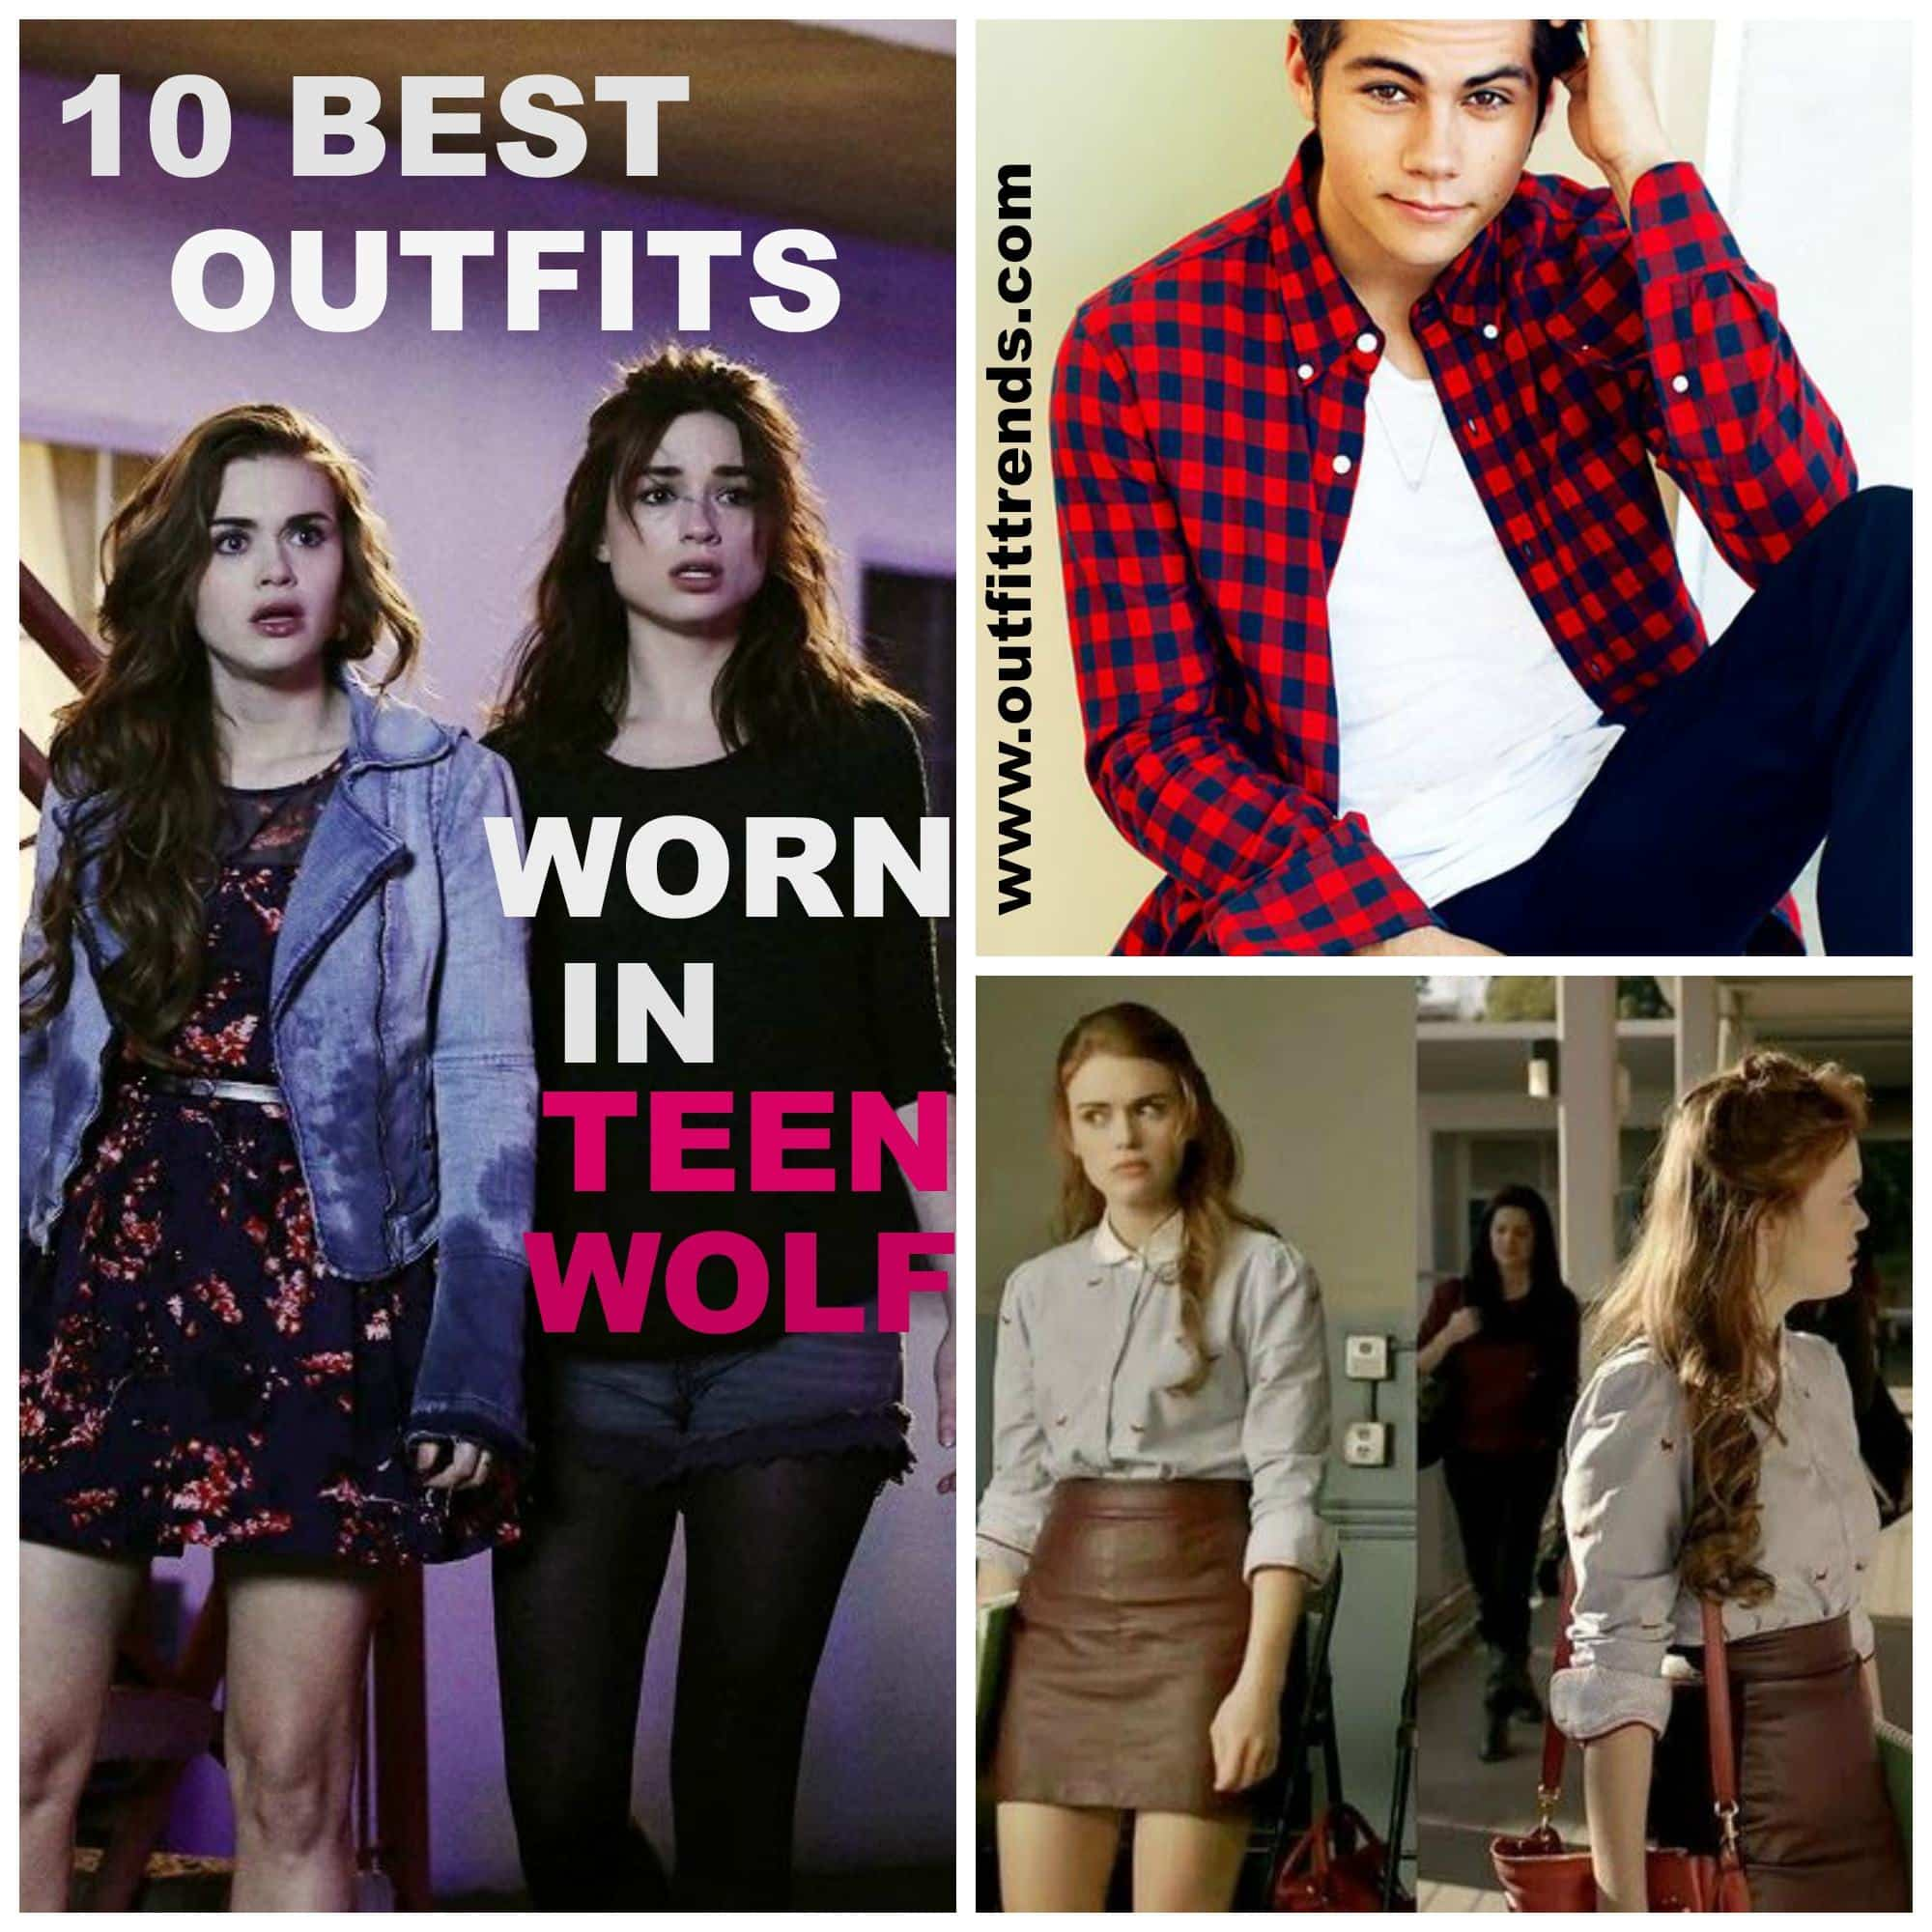 Teen Wolf Outfits-10 Best Outfits Worn in Teen Wolf Seasons